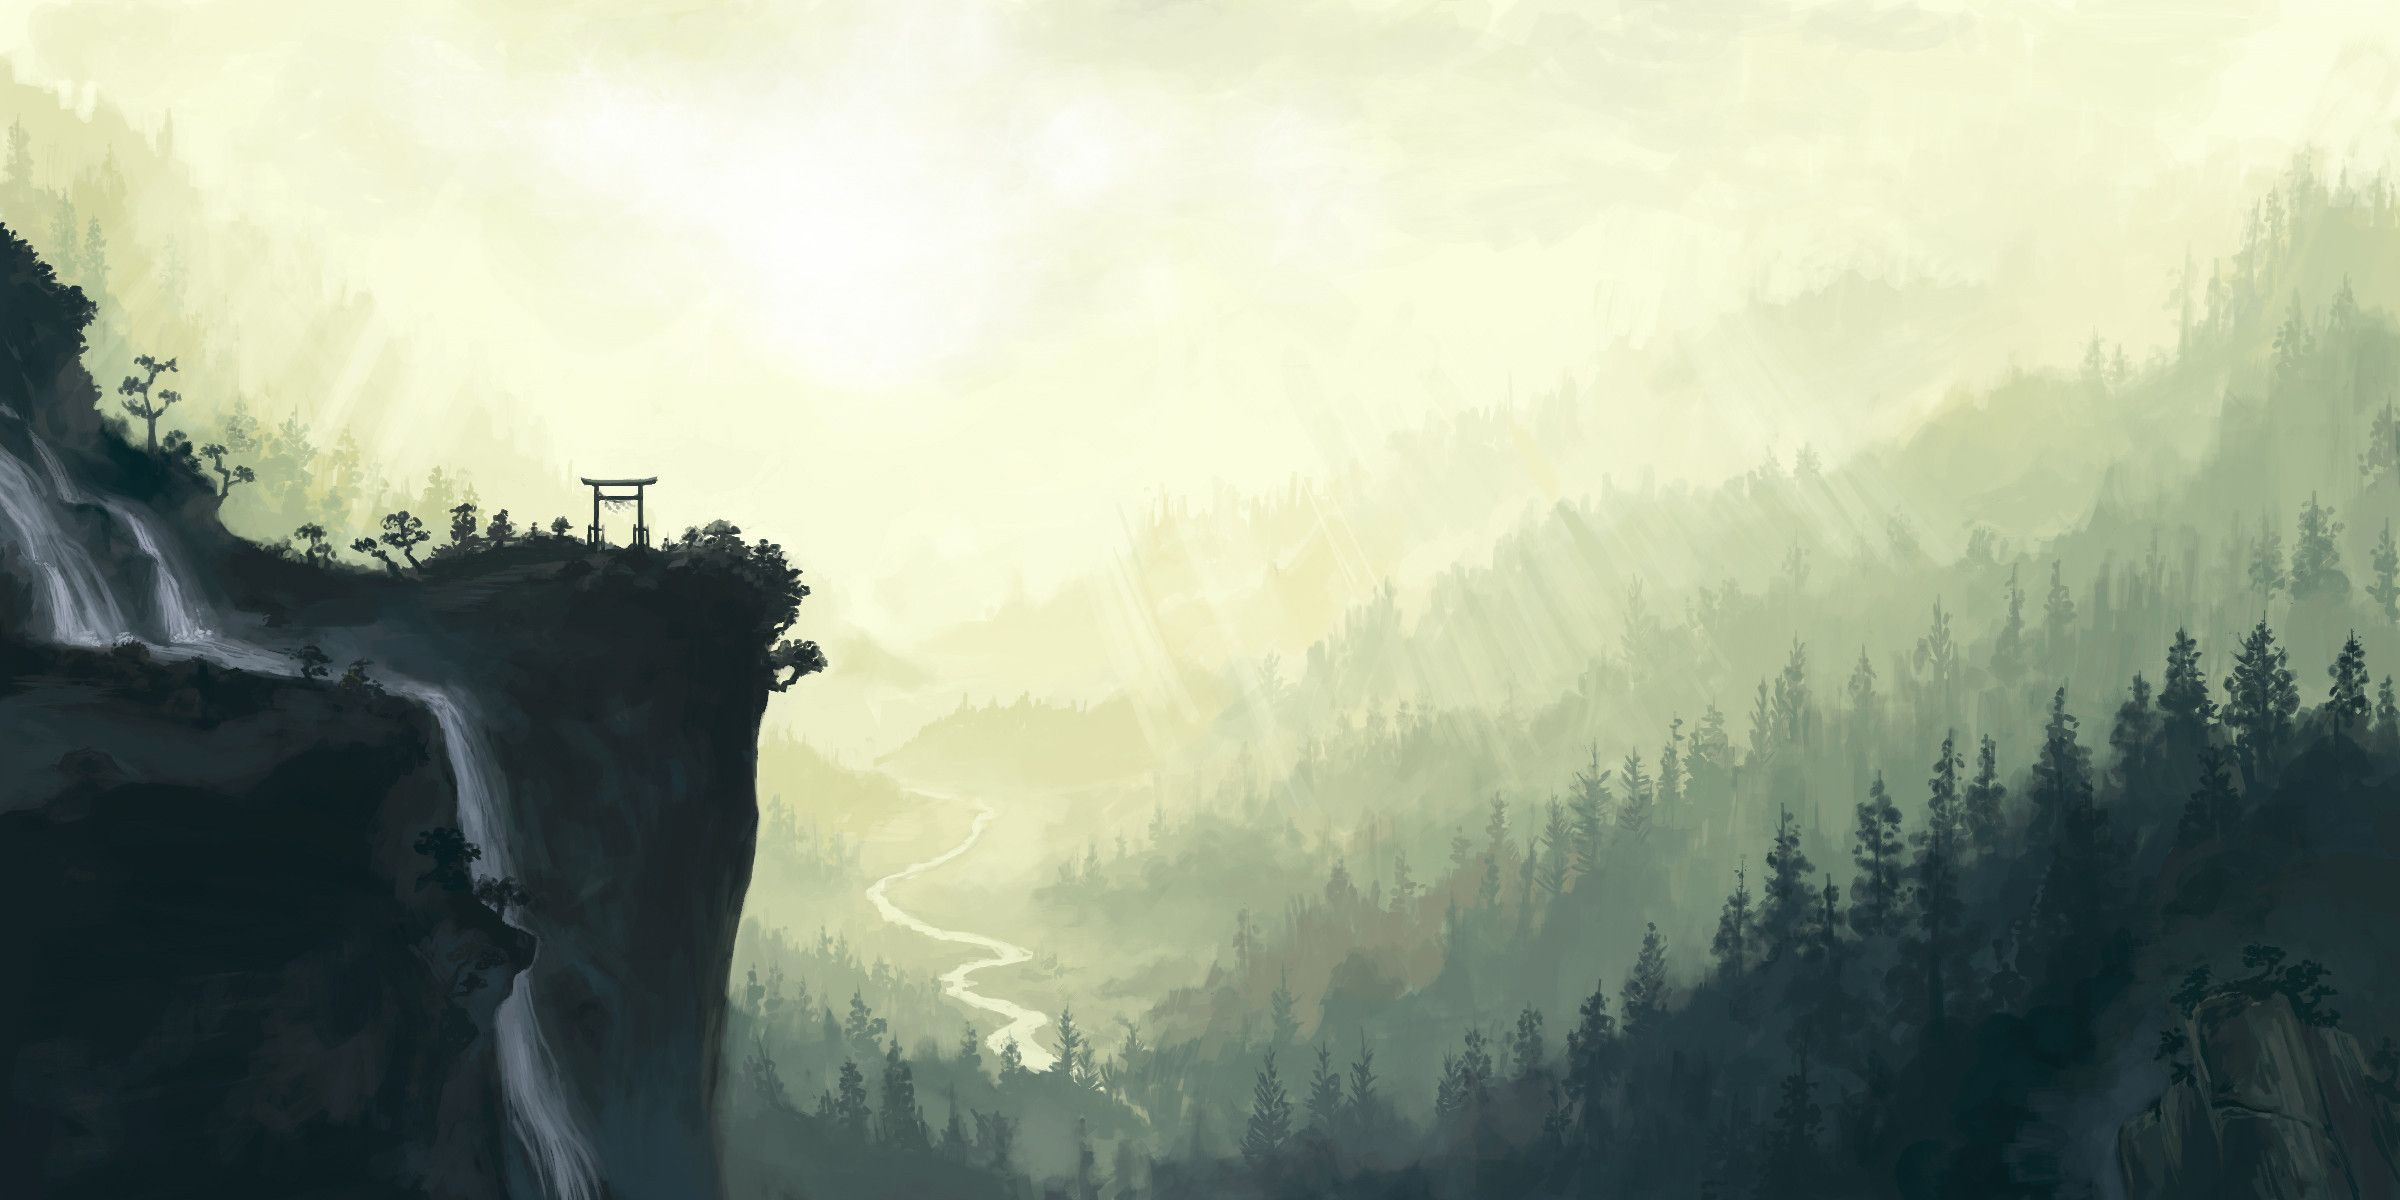 Cool Japanese Landscape Ink Painting Images Design Inspiration Tumblr Scenery Painting Wallpaper Scenery Background